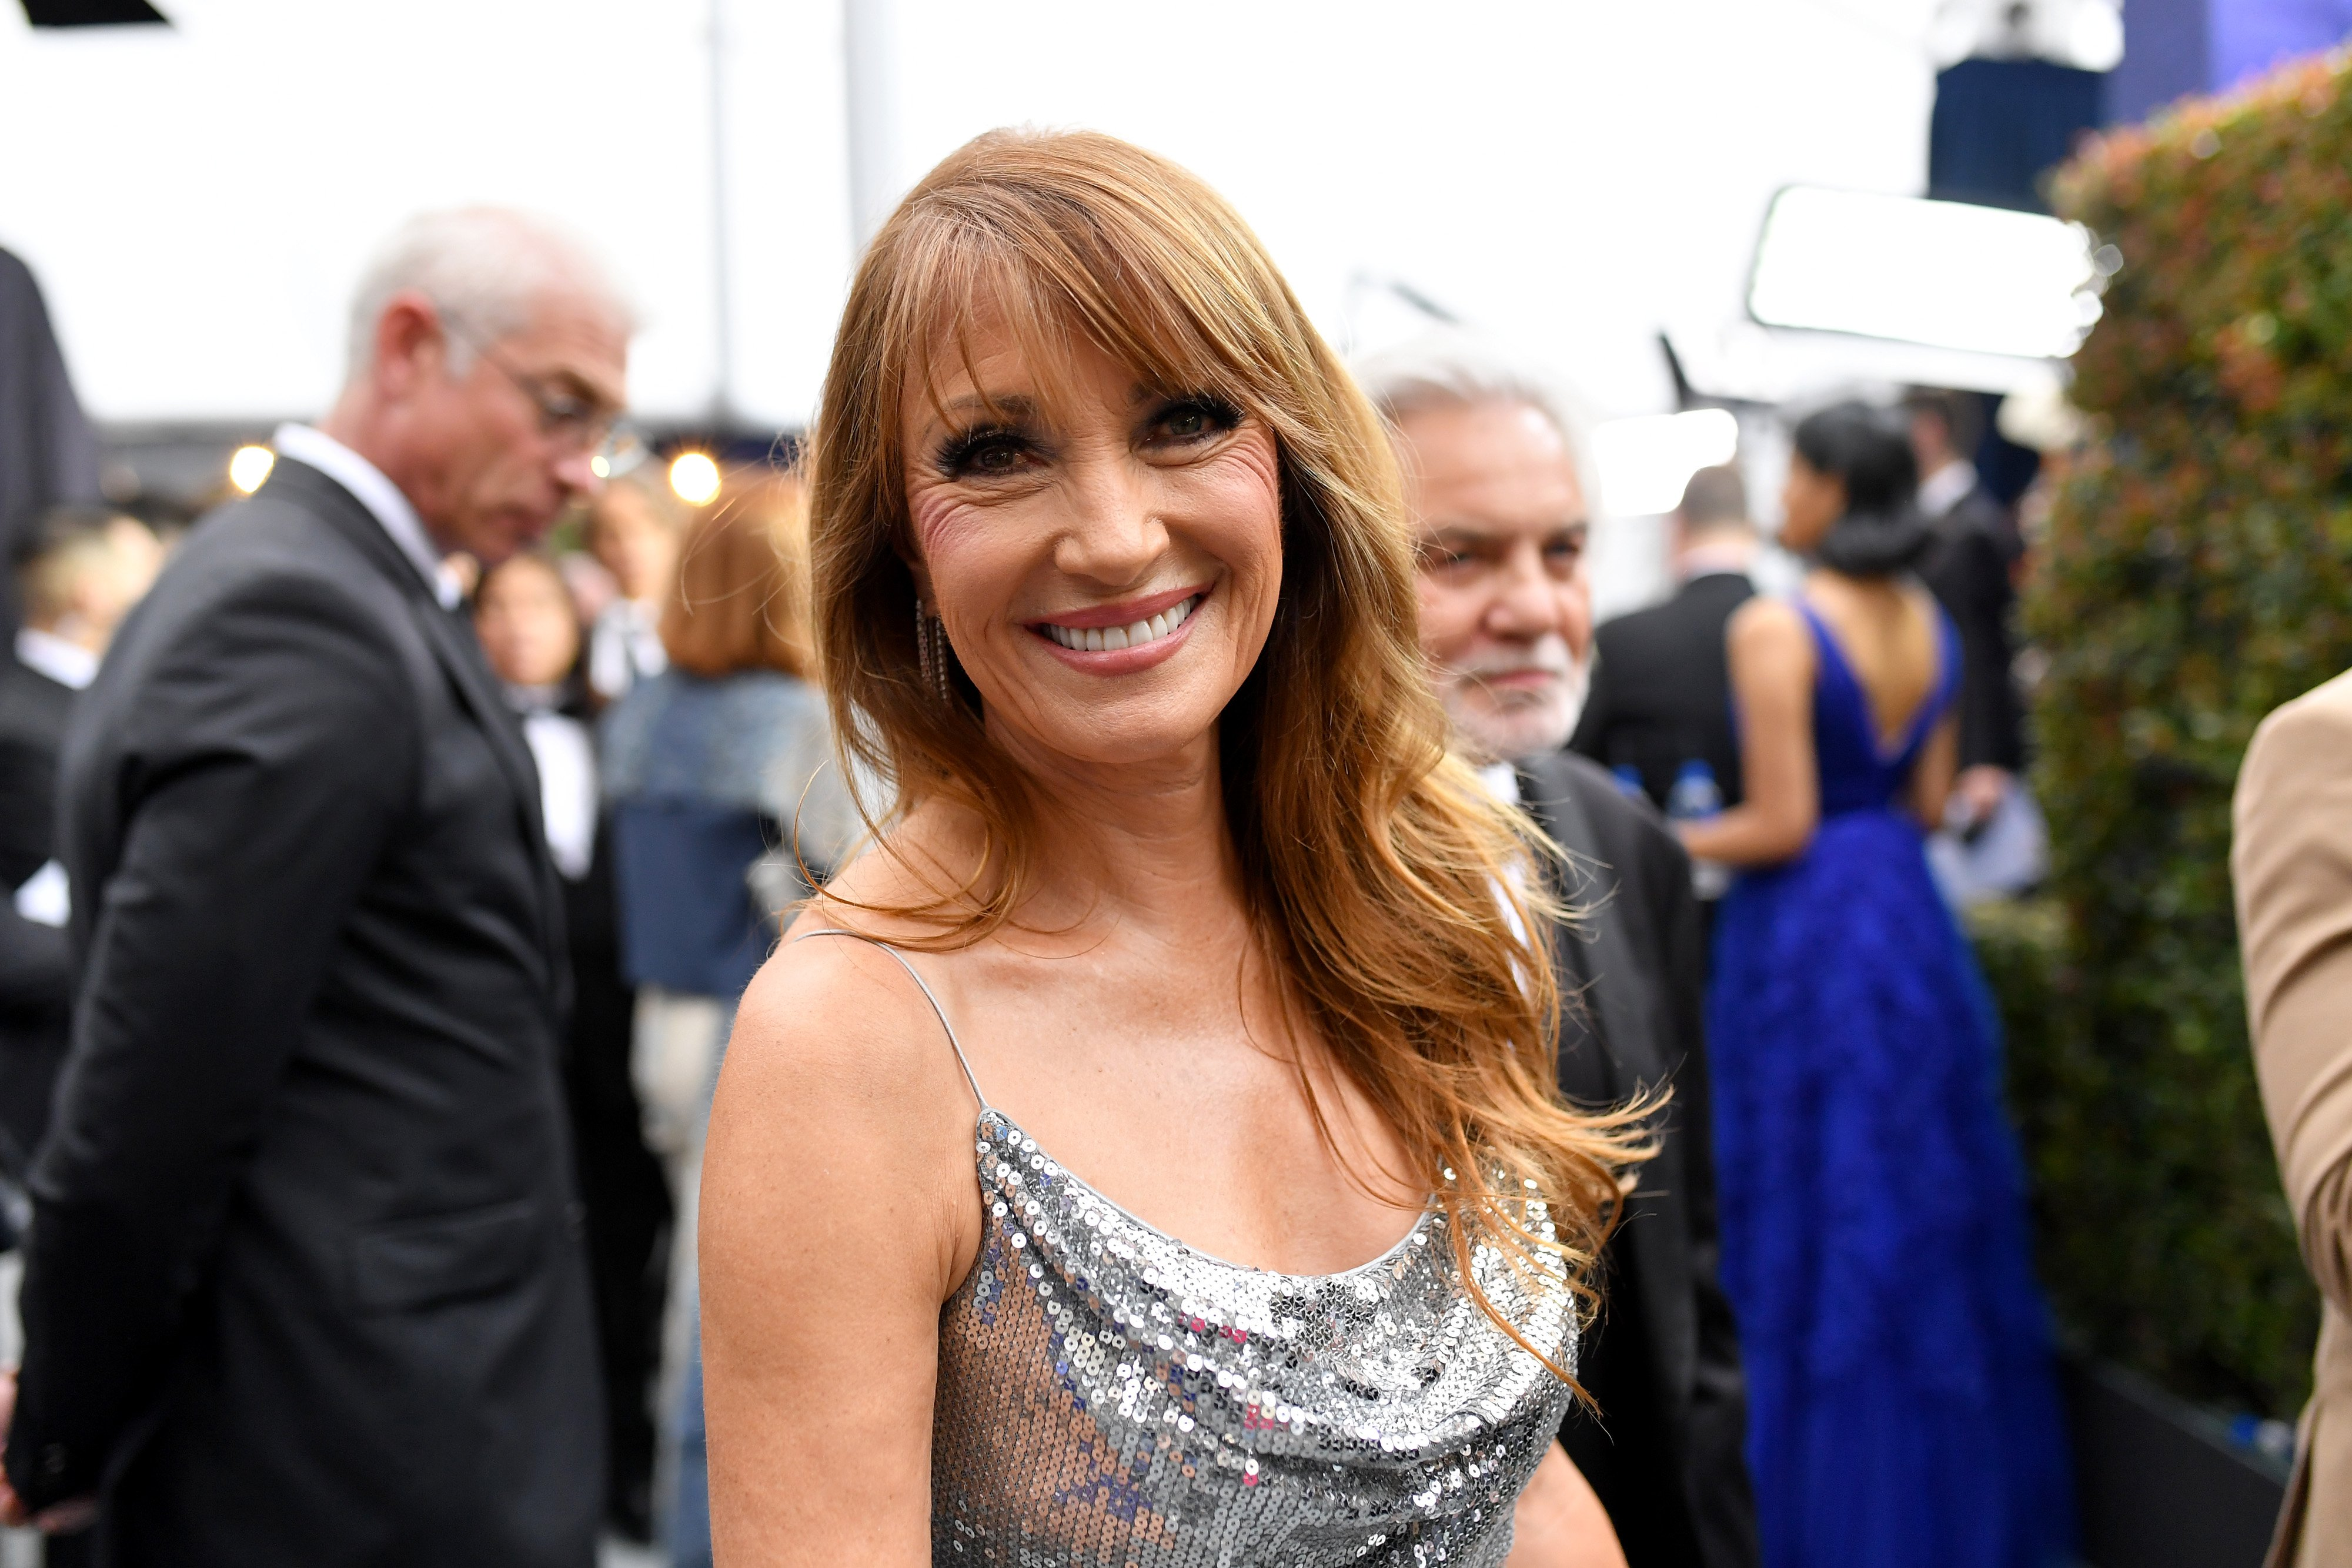 Jane Seymour at the Screen Actors Guild Awards in Los Angeles on January 19, 2020. | Photo: Getty Images.